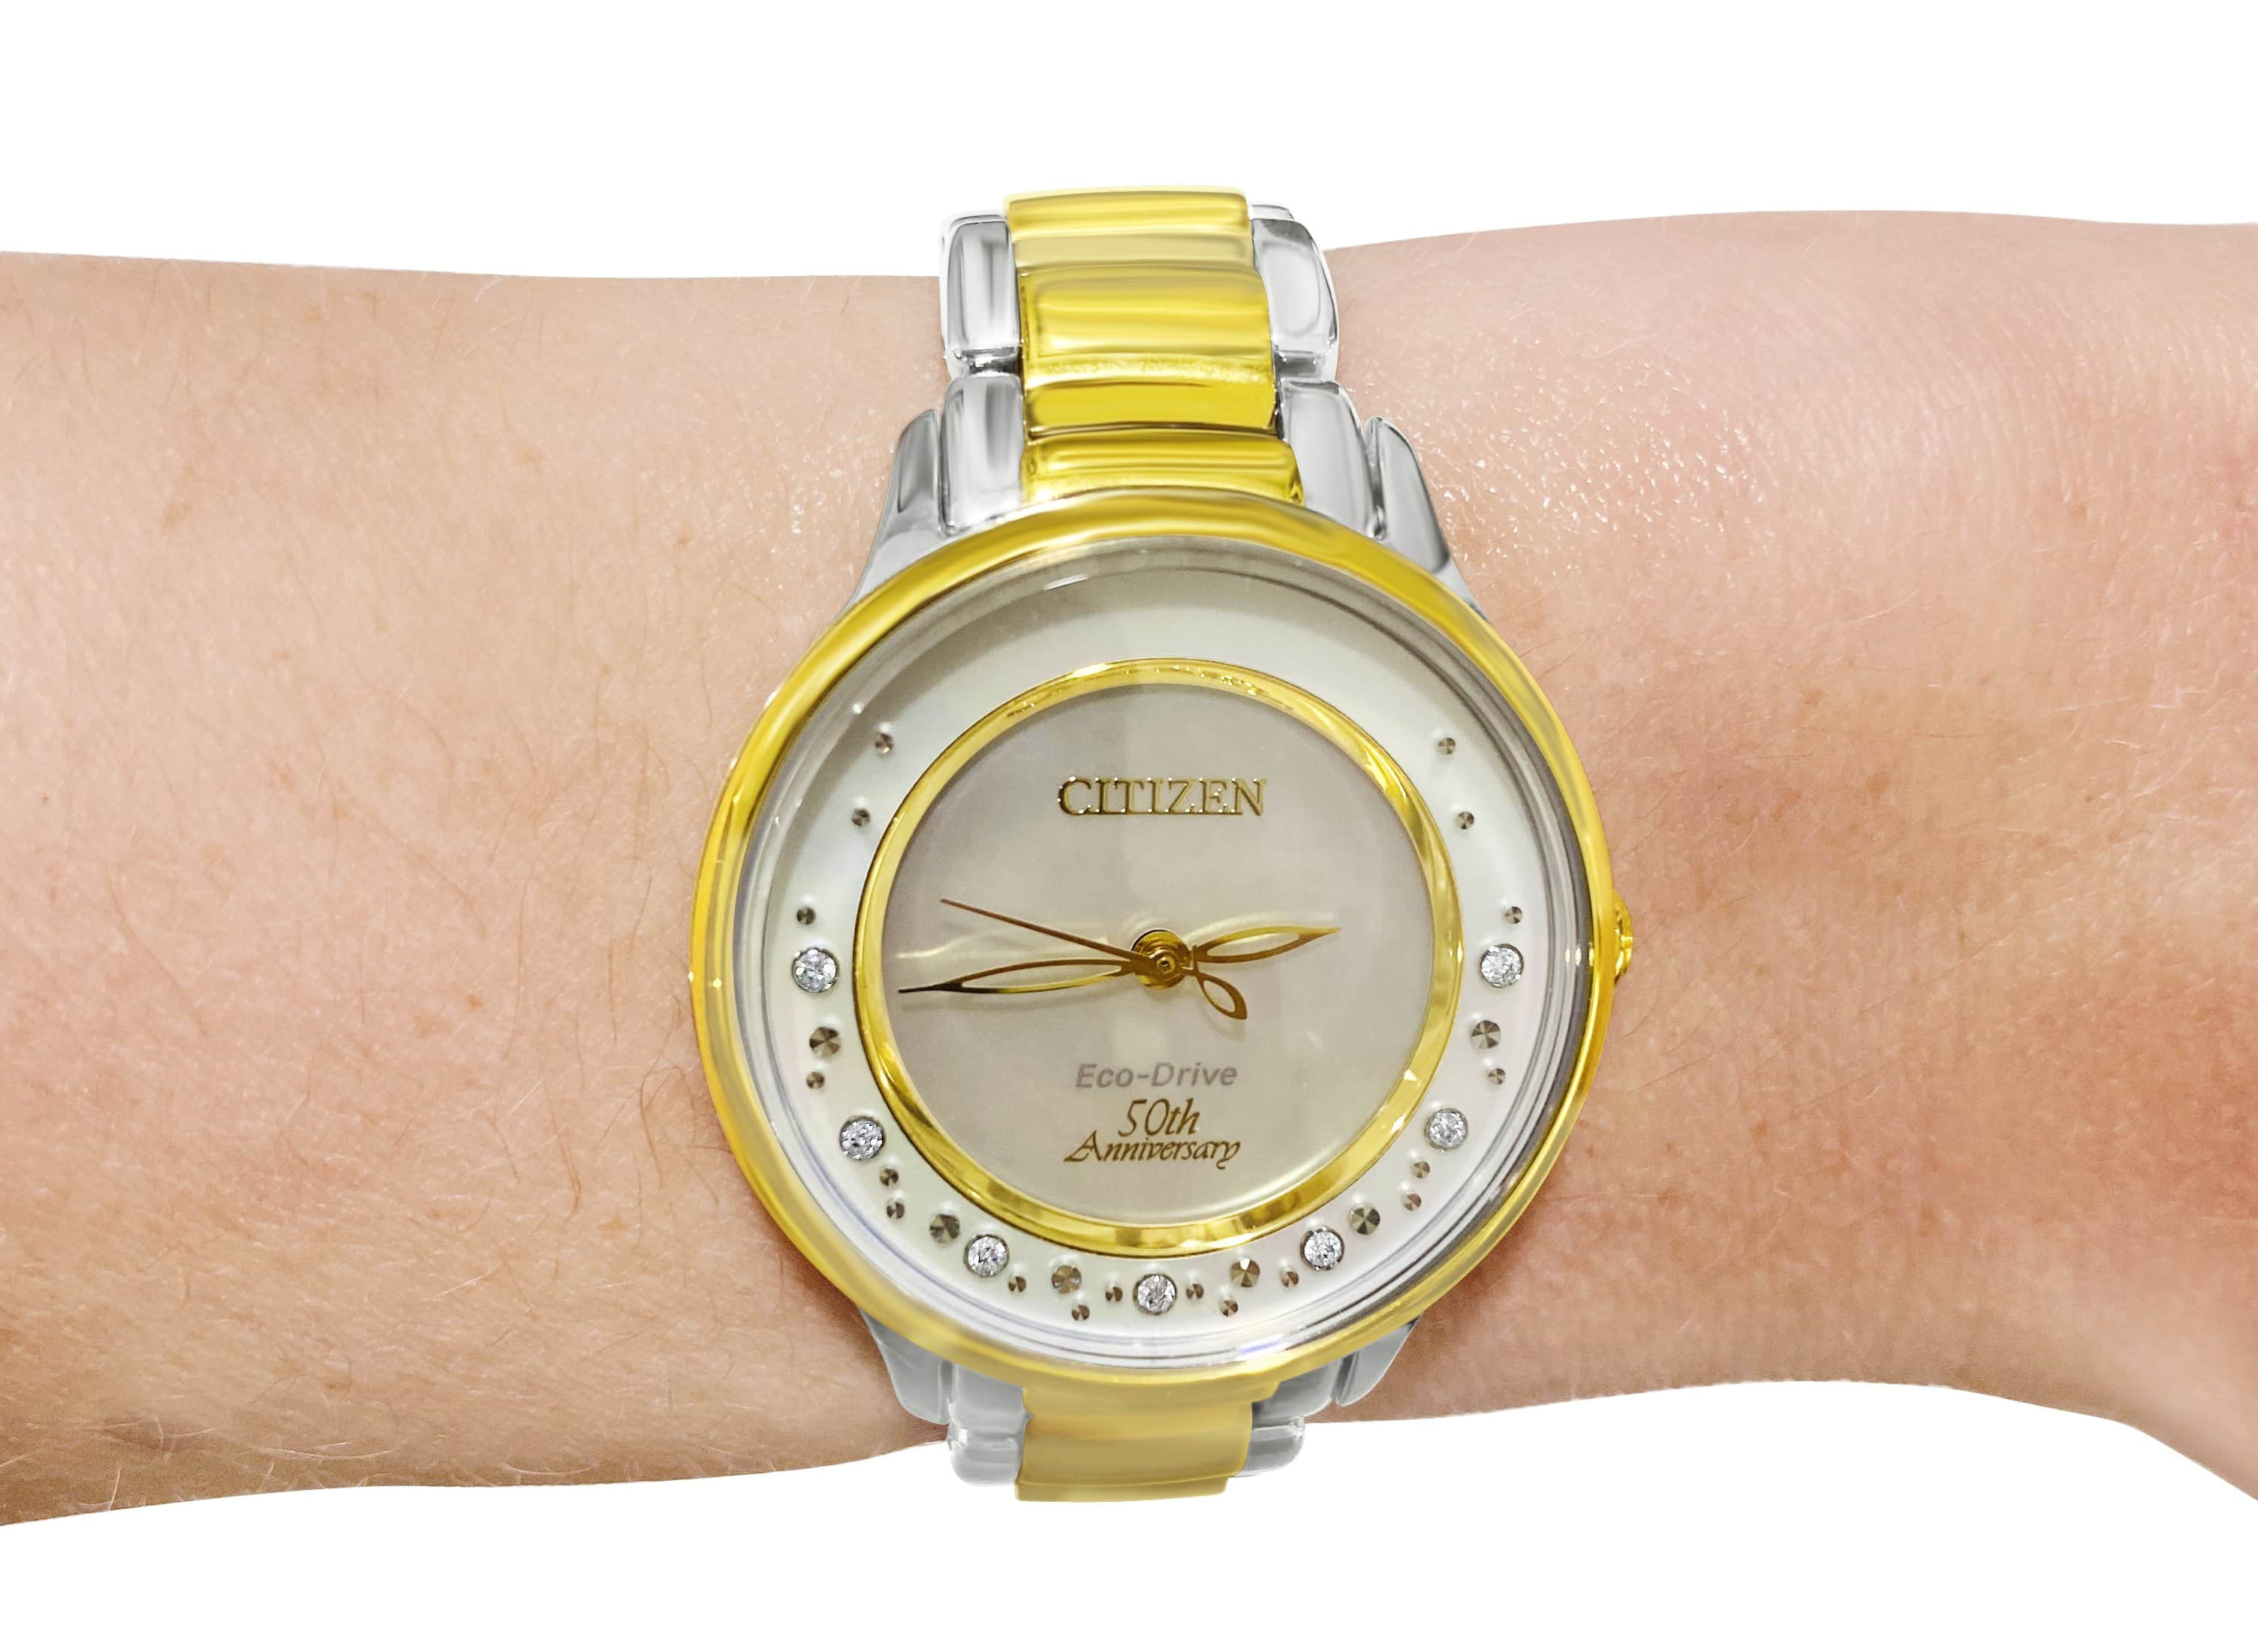 Citizen Ladies Ecodrive - 50th Anniversary Edition